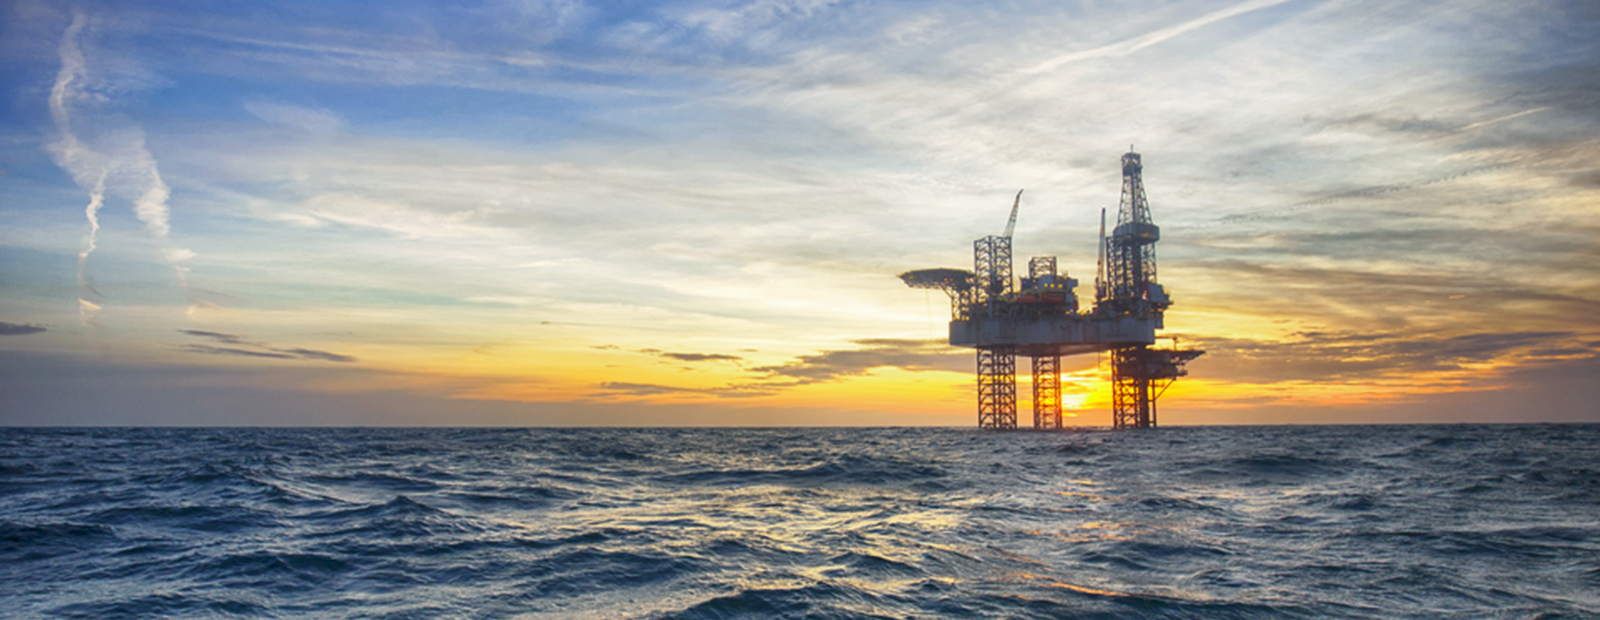 Oil-and-gas-page-banner